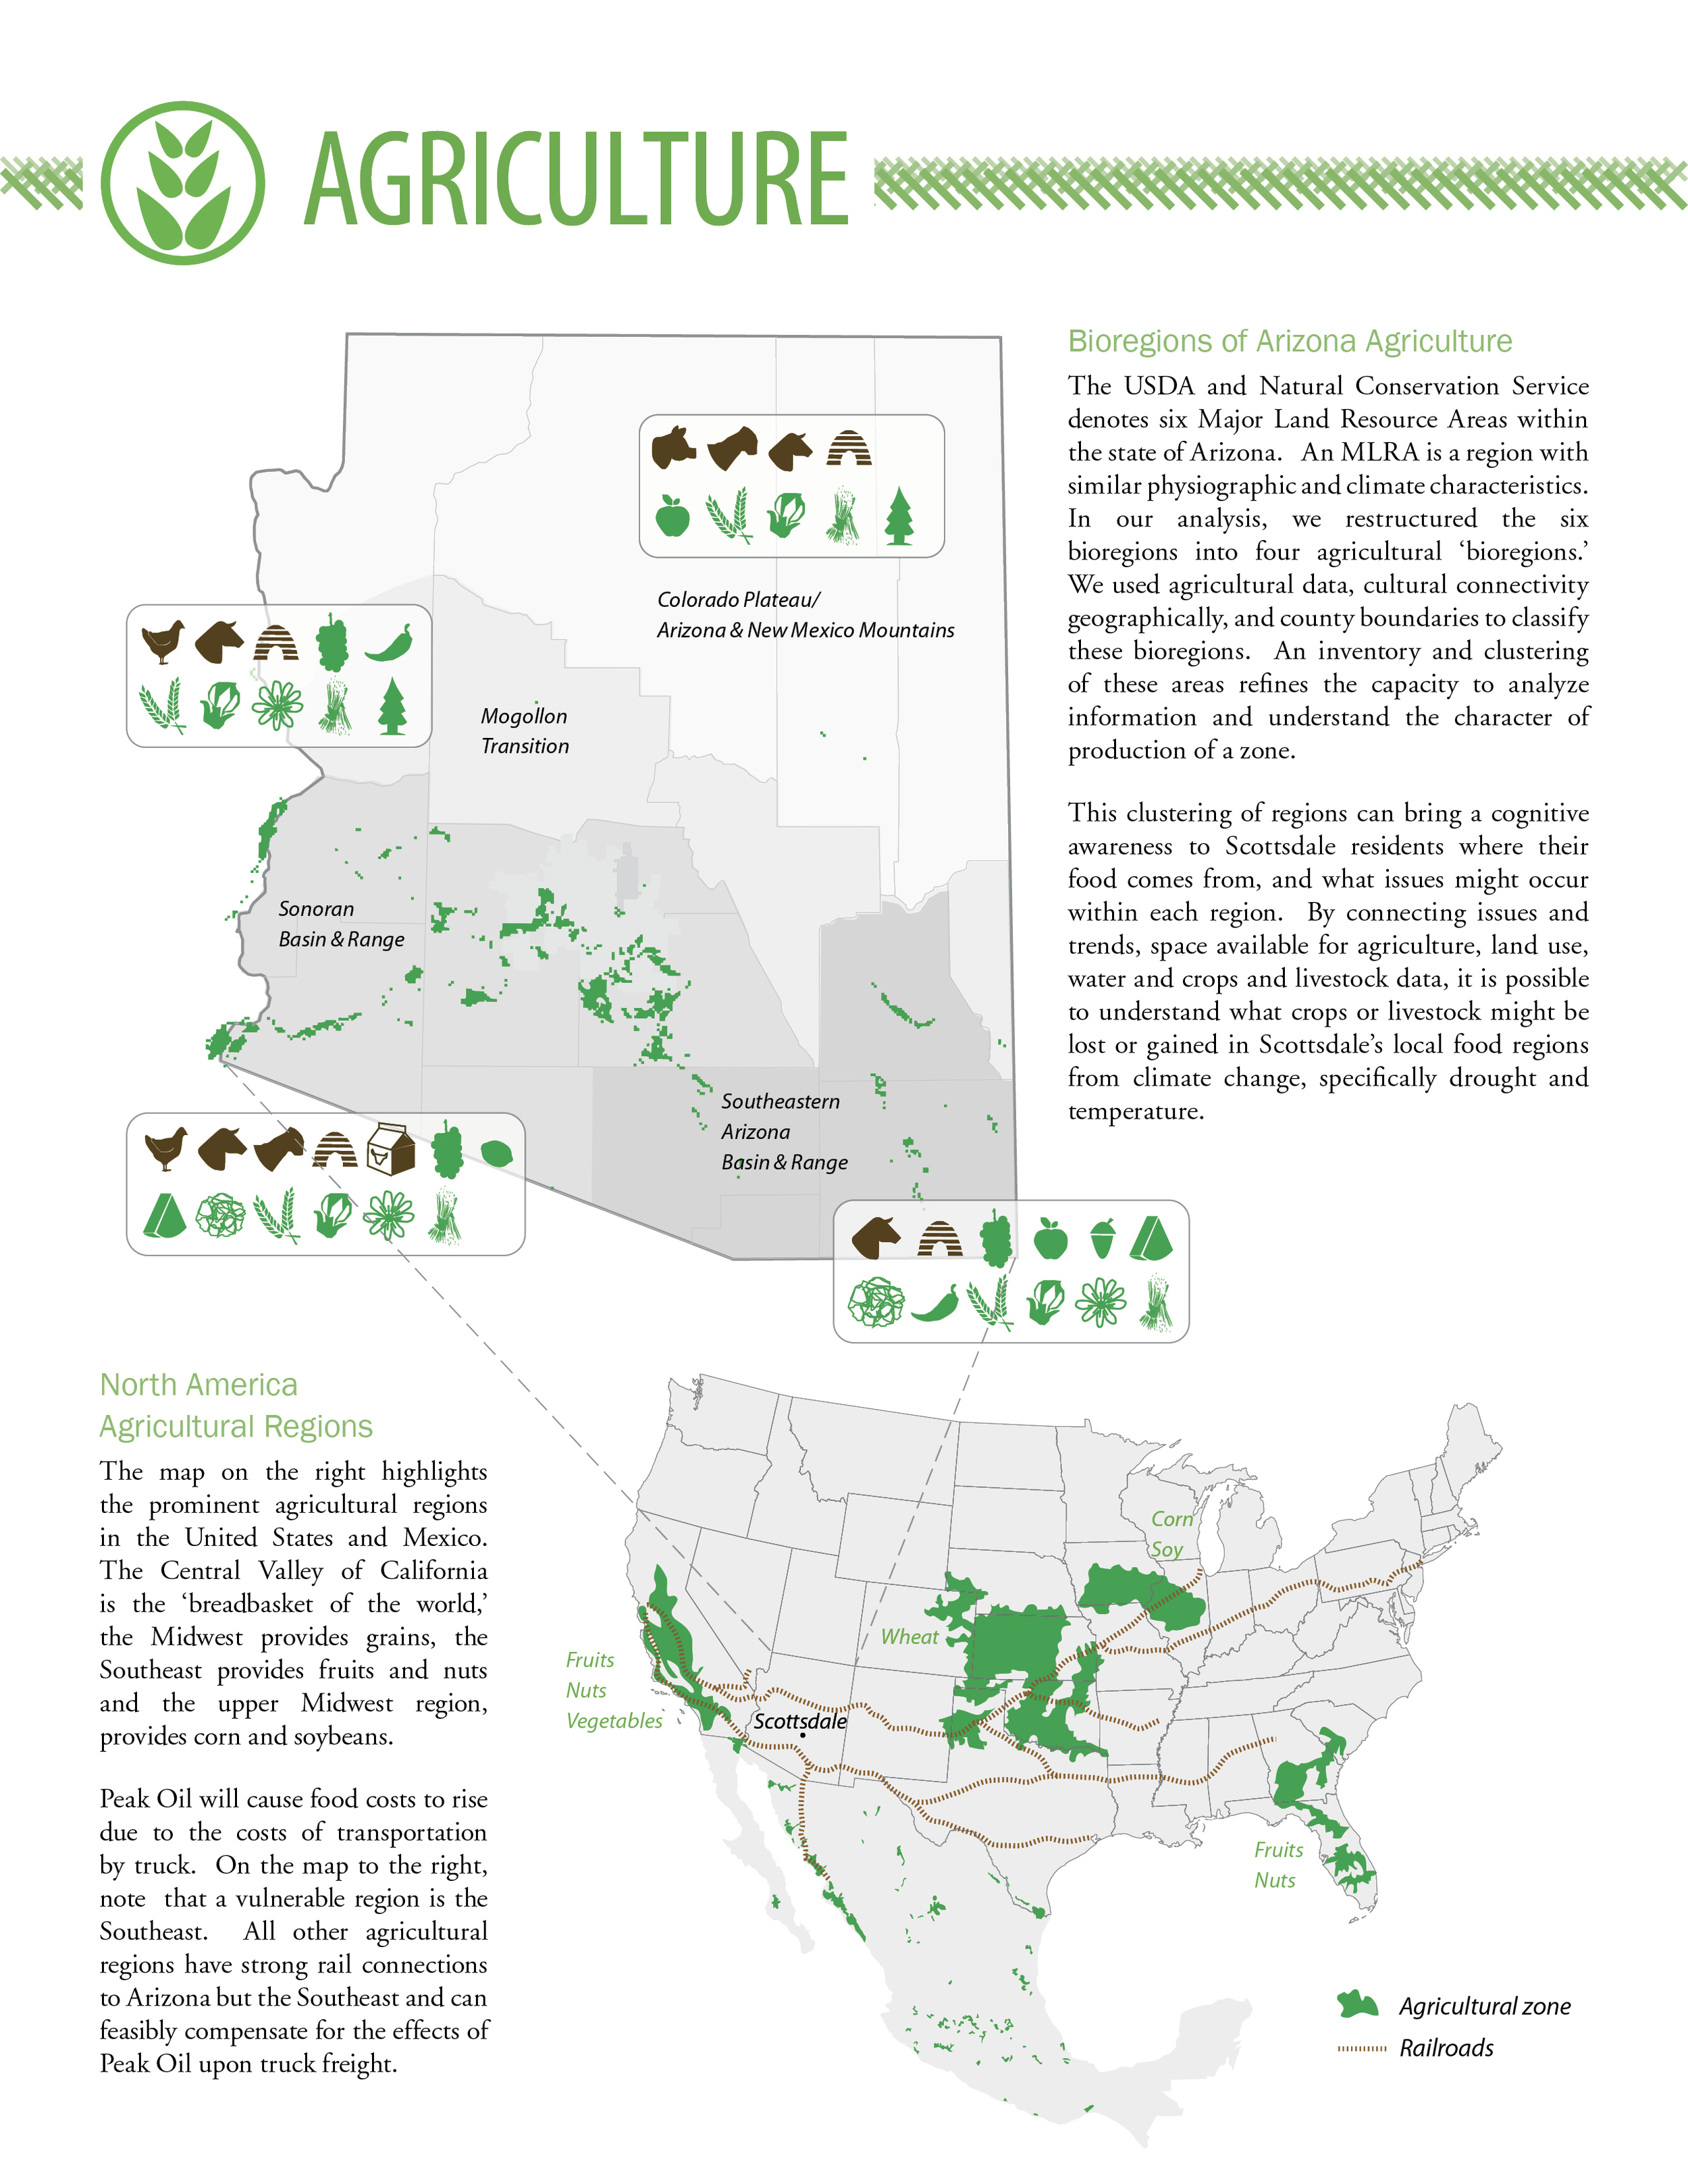 This diagram shows the national agriculture supply - there is a weakness in the connection to the Southeast. Other information includes the rising reliance on crops from Mexico and California's reduced water allocation for agriculture and their susceptibility to drought and climate change.